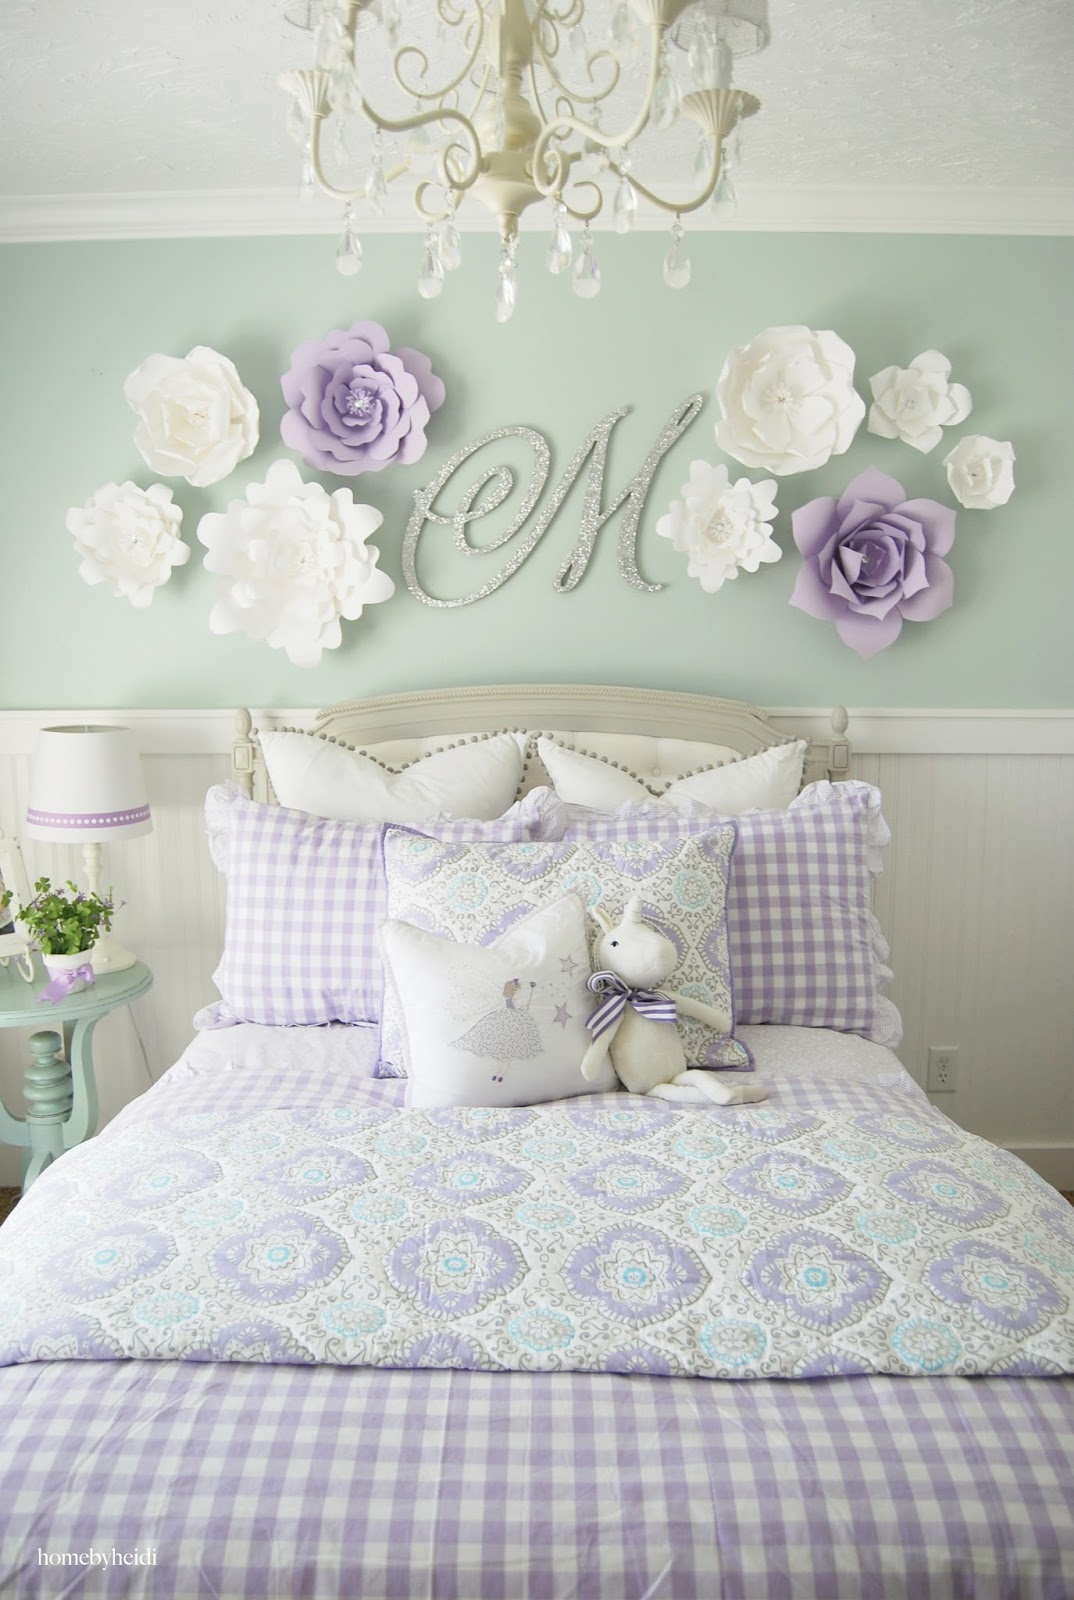 Home by heidi purple turquoise little girls room - Girls room ideas ...